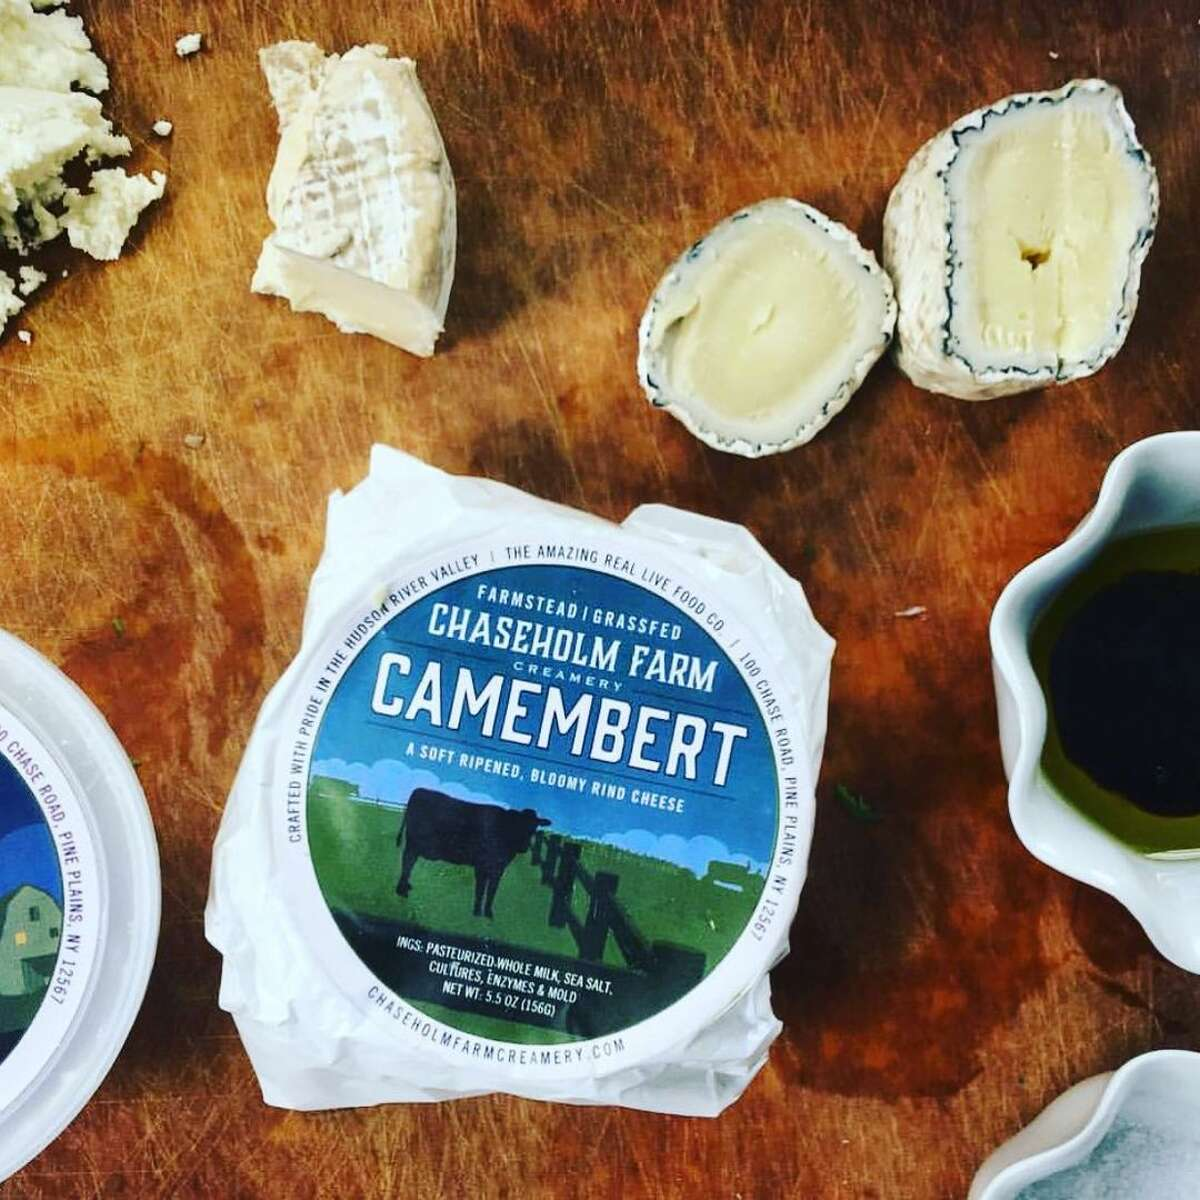 Chaseholm Farm Creamery is run by the brother of Sarah Chase, who owns the grass-fed dairy Chaseholm Farm in Pine Plains.